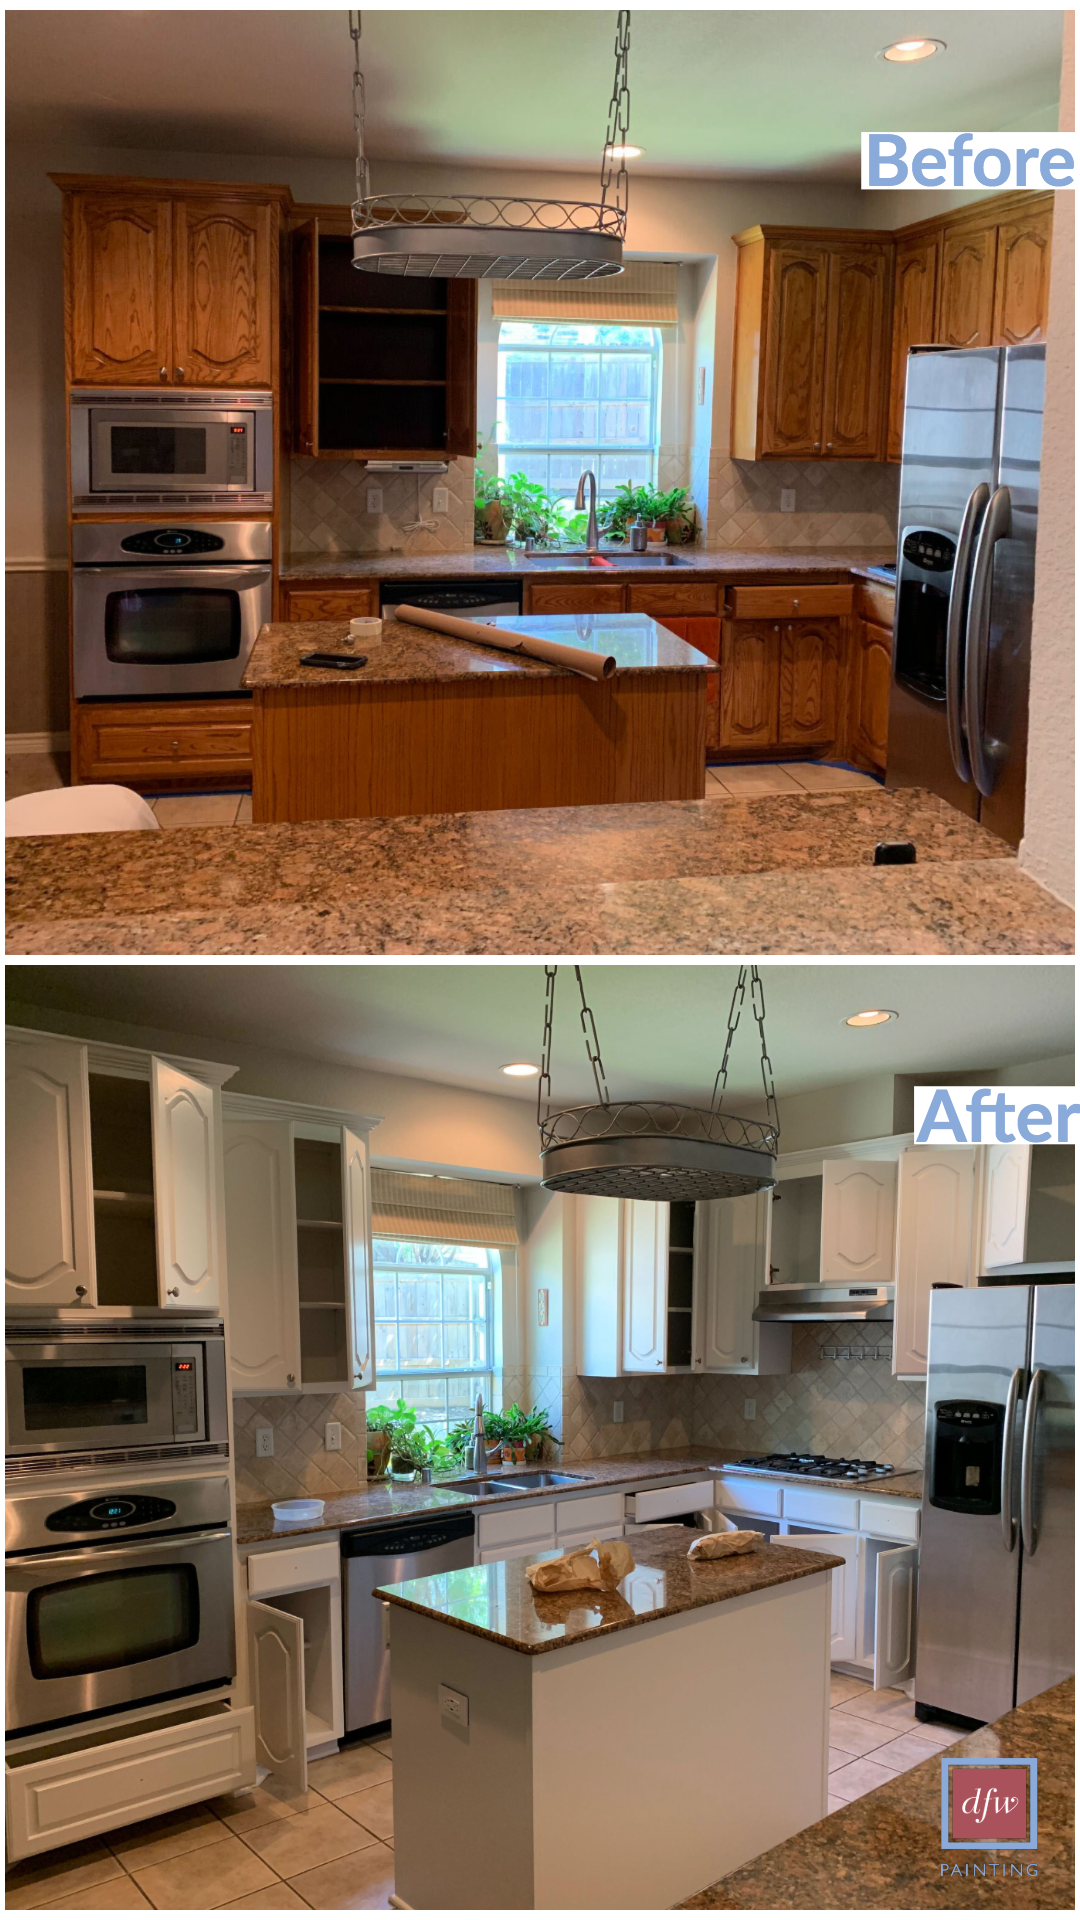 Kitchen Renovation Painted Cabinets Before And After Dfw Painting Kitchen Renovation Kitchen Transformation Refinishing Cabinets